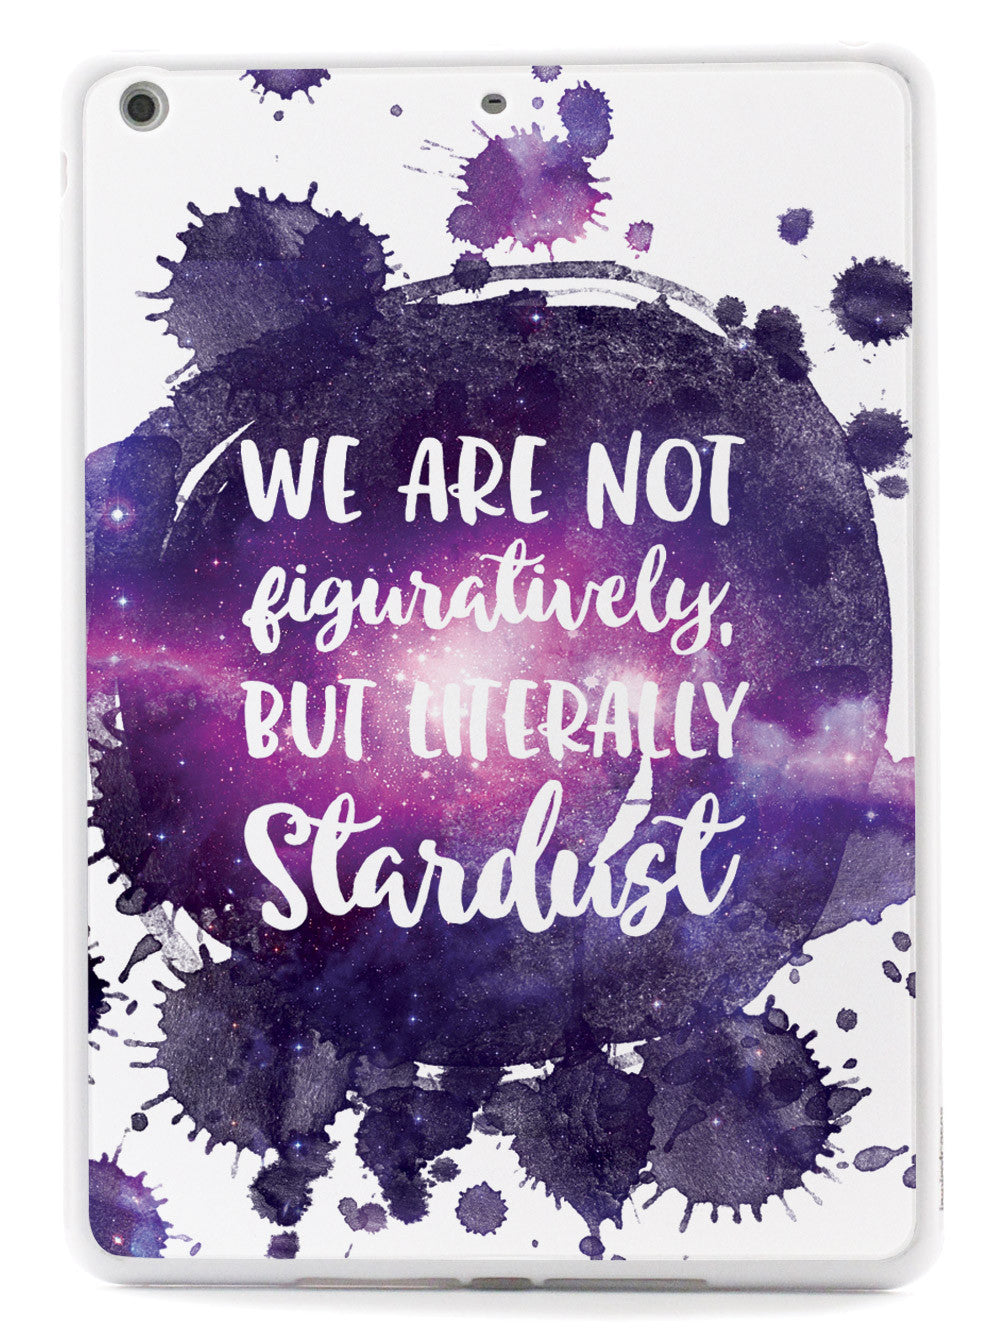 We are Stardust - Neil deGrasse Tyson Quote Case